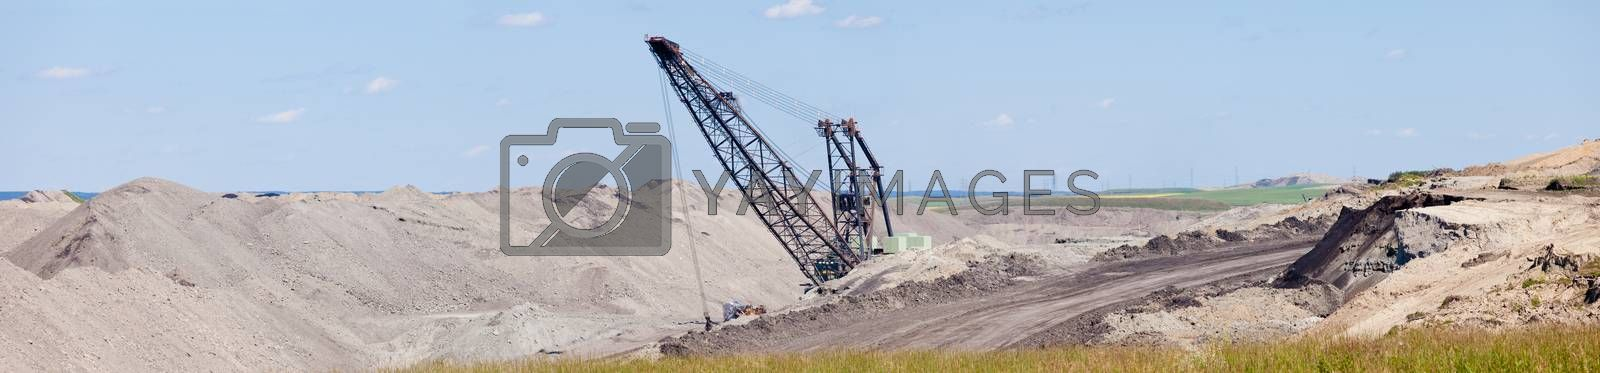 Coalmine excavator moonscape tailings panorama by PiLens